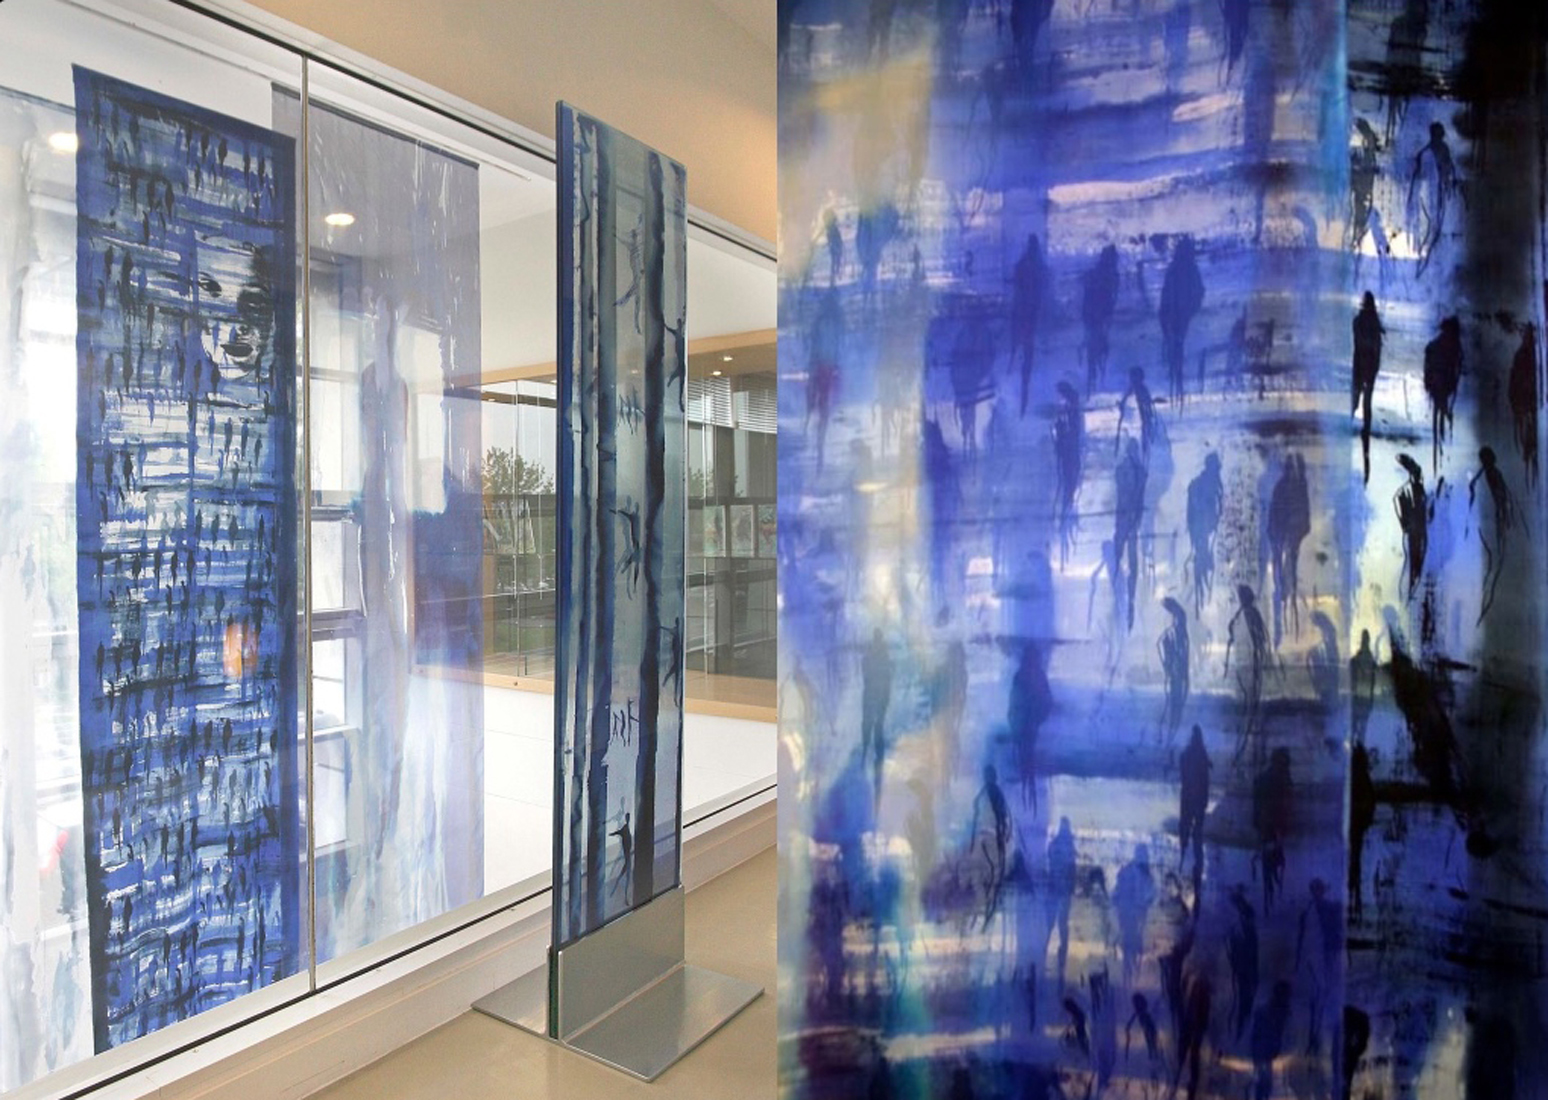 fiberart titled transition by carole waller